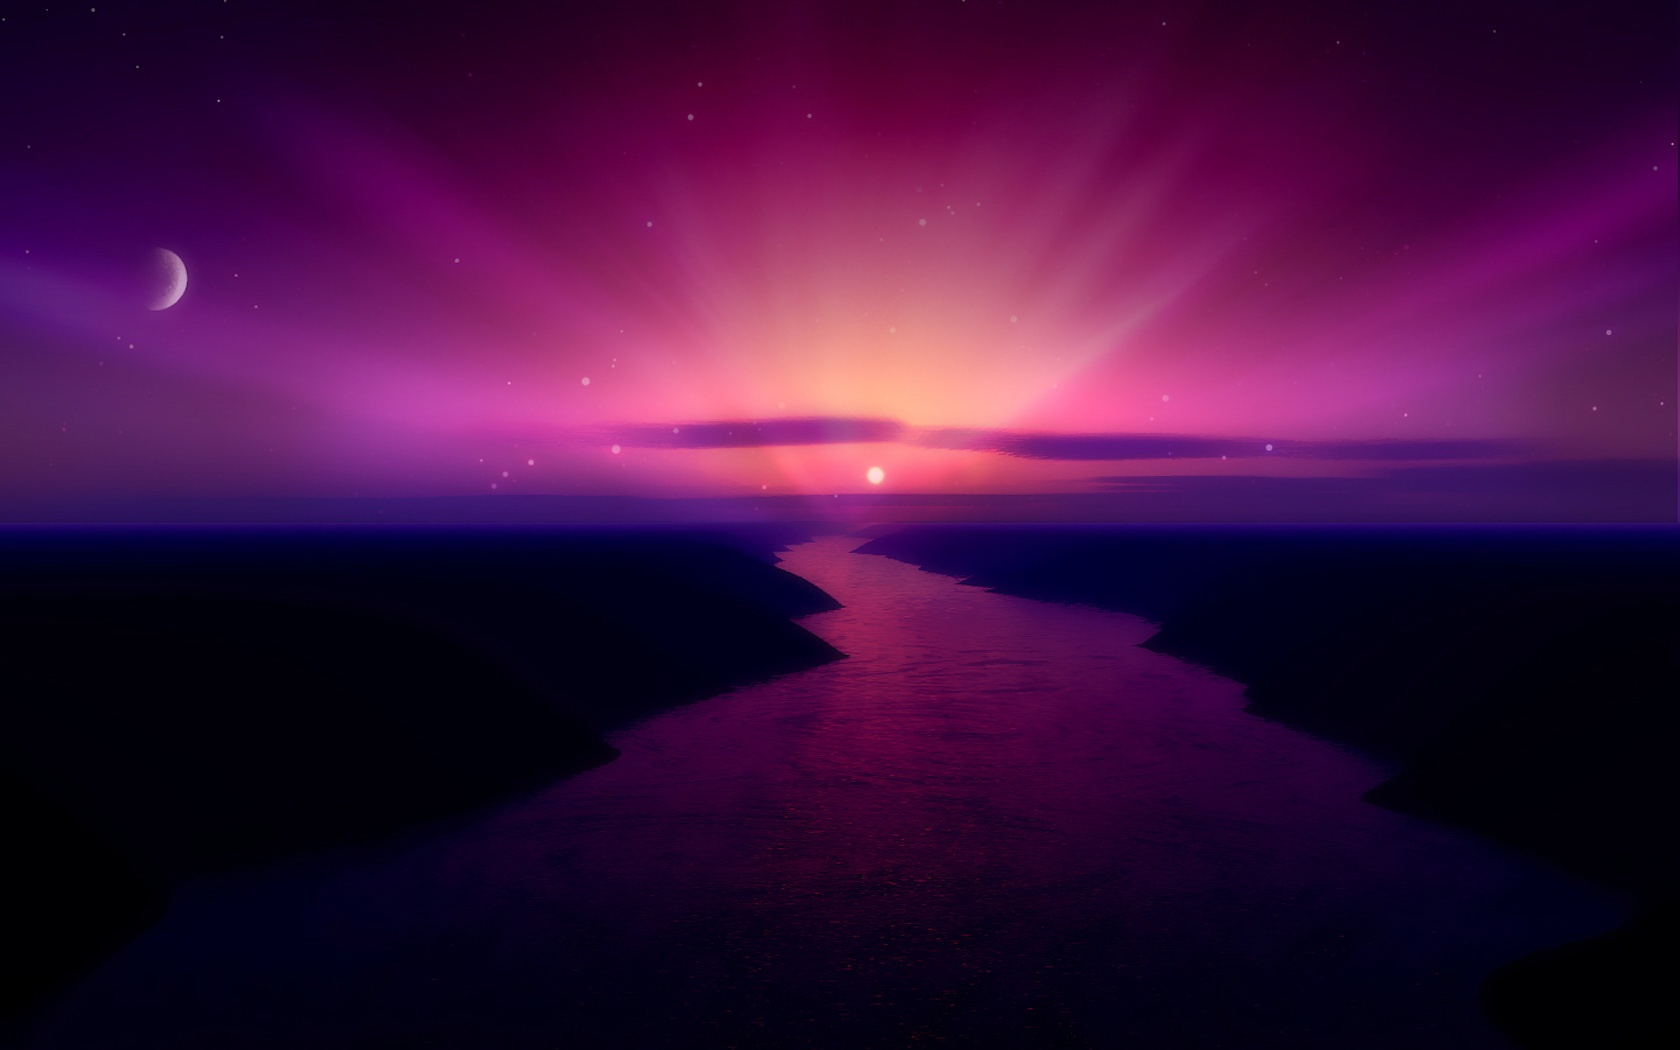 Morning Purple Sunrise 638.75 Kb